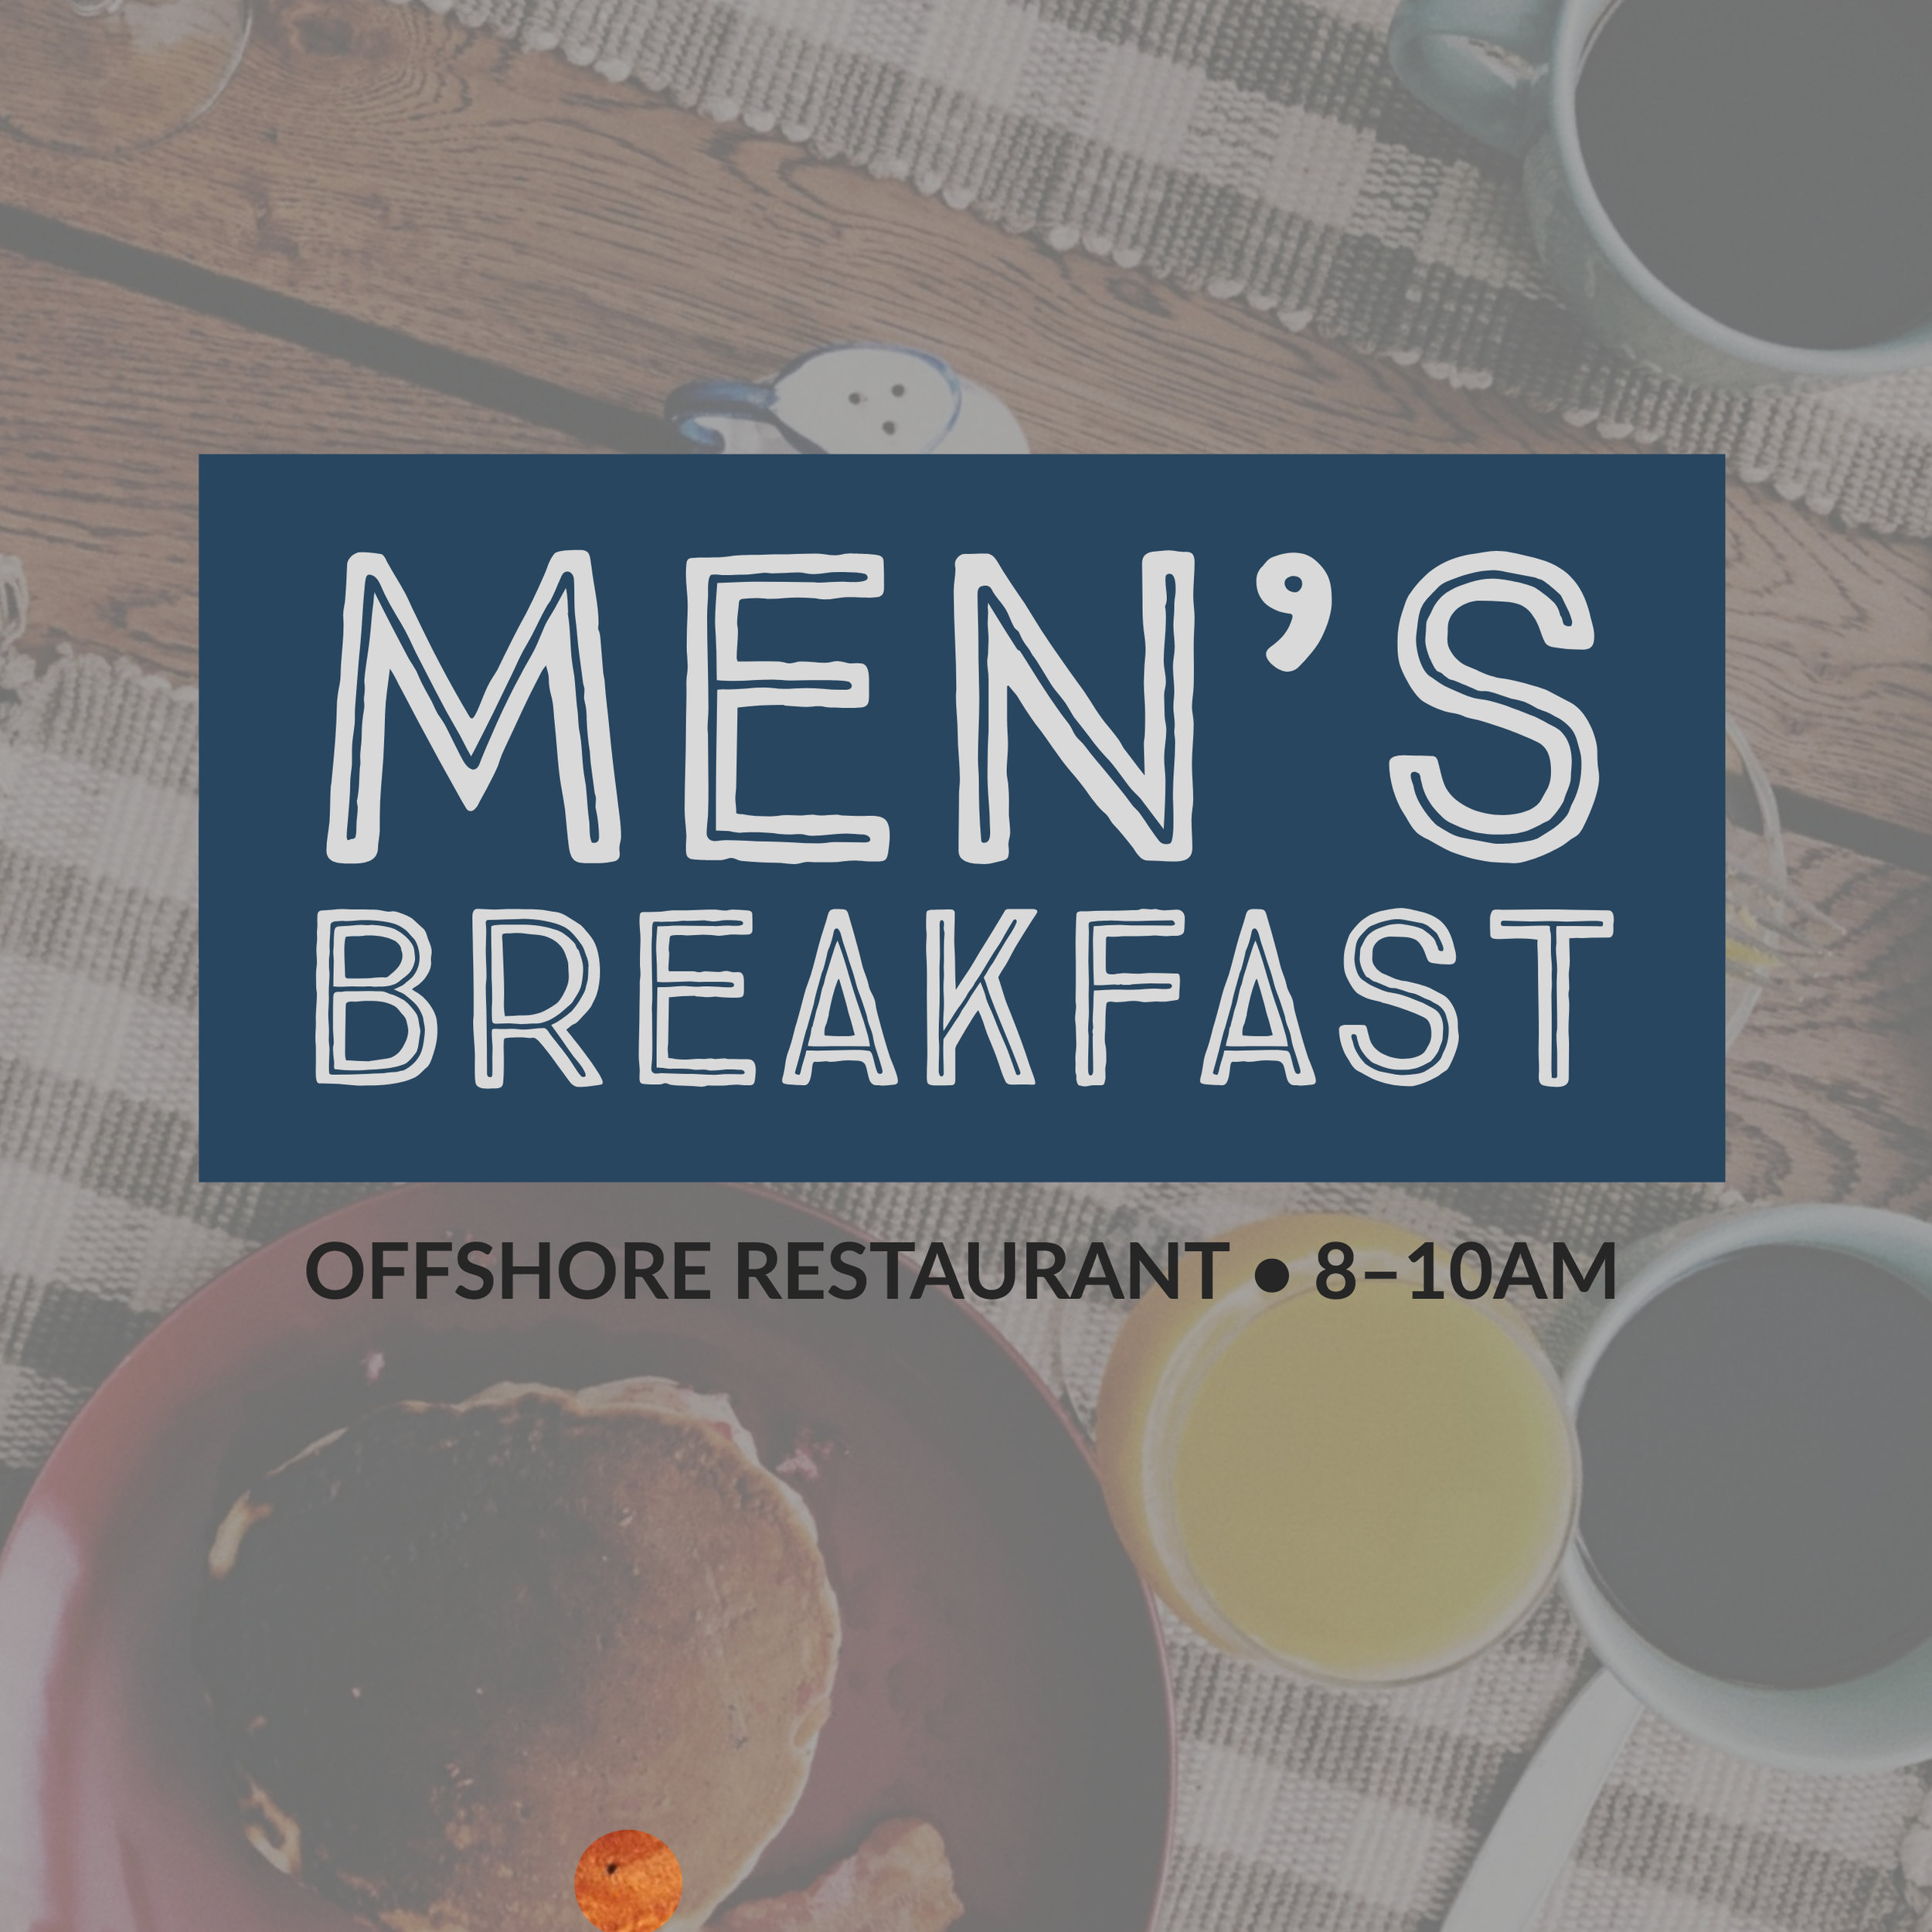 Men's Breakfast at The Offshore Restaurant